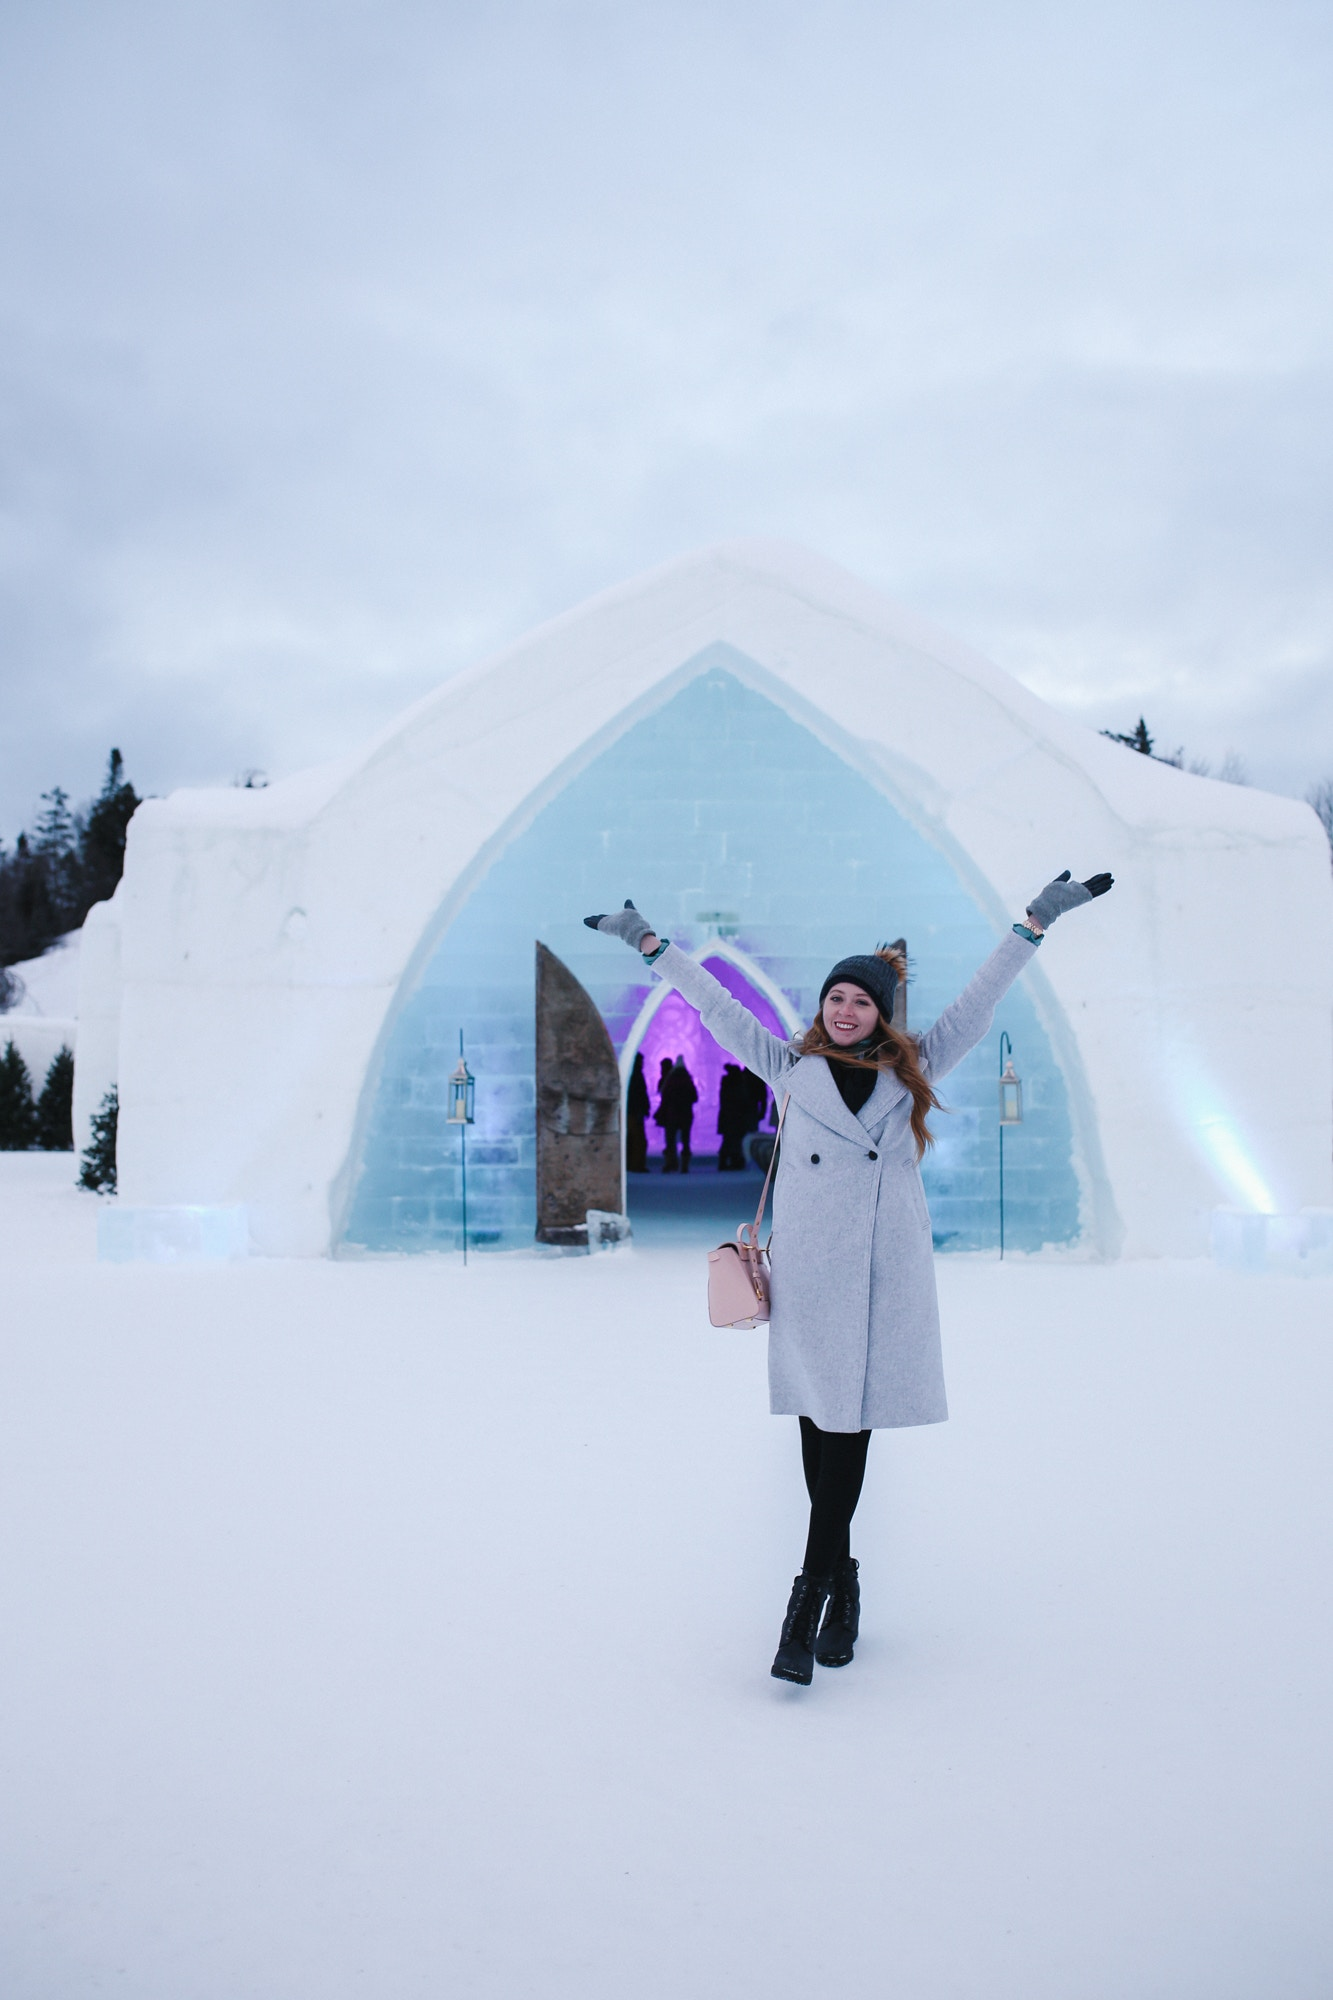 Top 10 Things to do in Quebec City in a weekend in winter: visit the Hotel de Glâce, an ice hotel located 40 minutes away and the only one in North America!